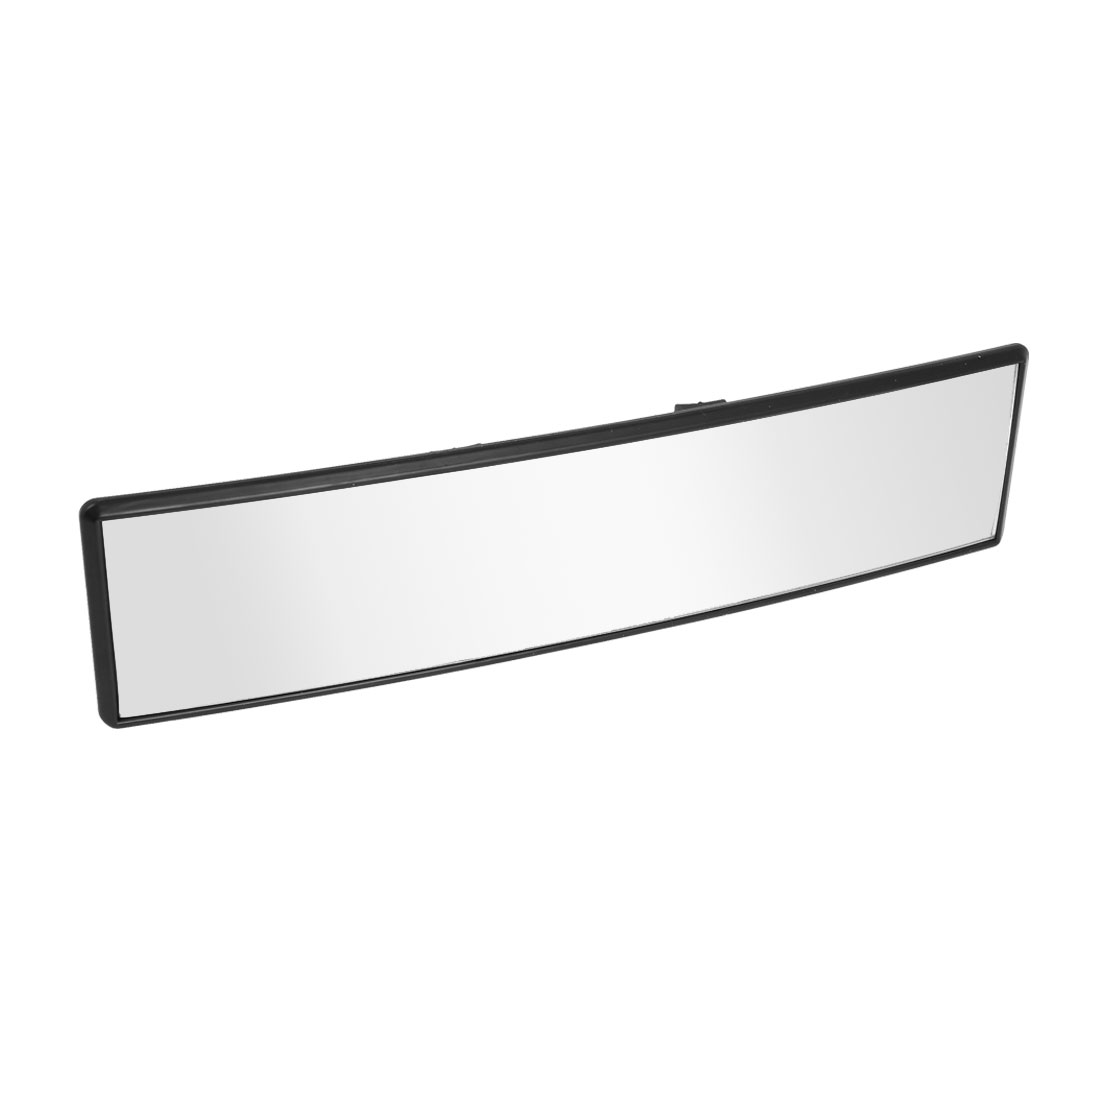 300mm Convex Curve Interior Clip On Panoramic Rear View Mirror